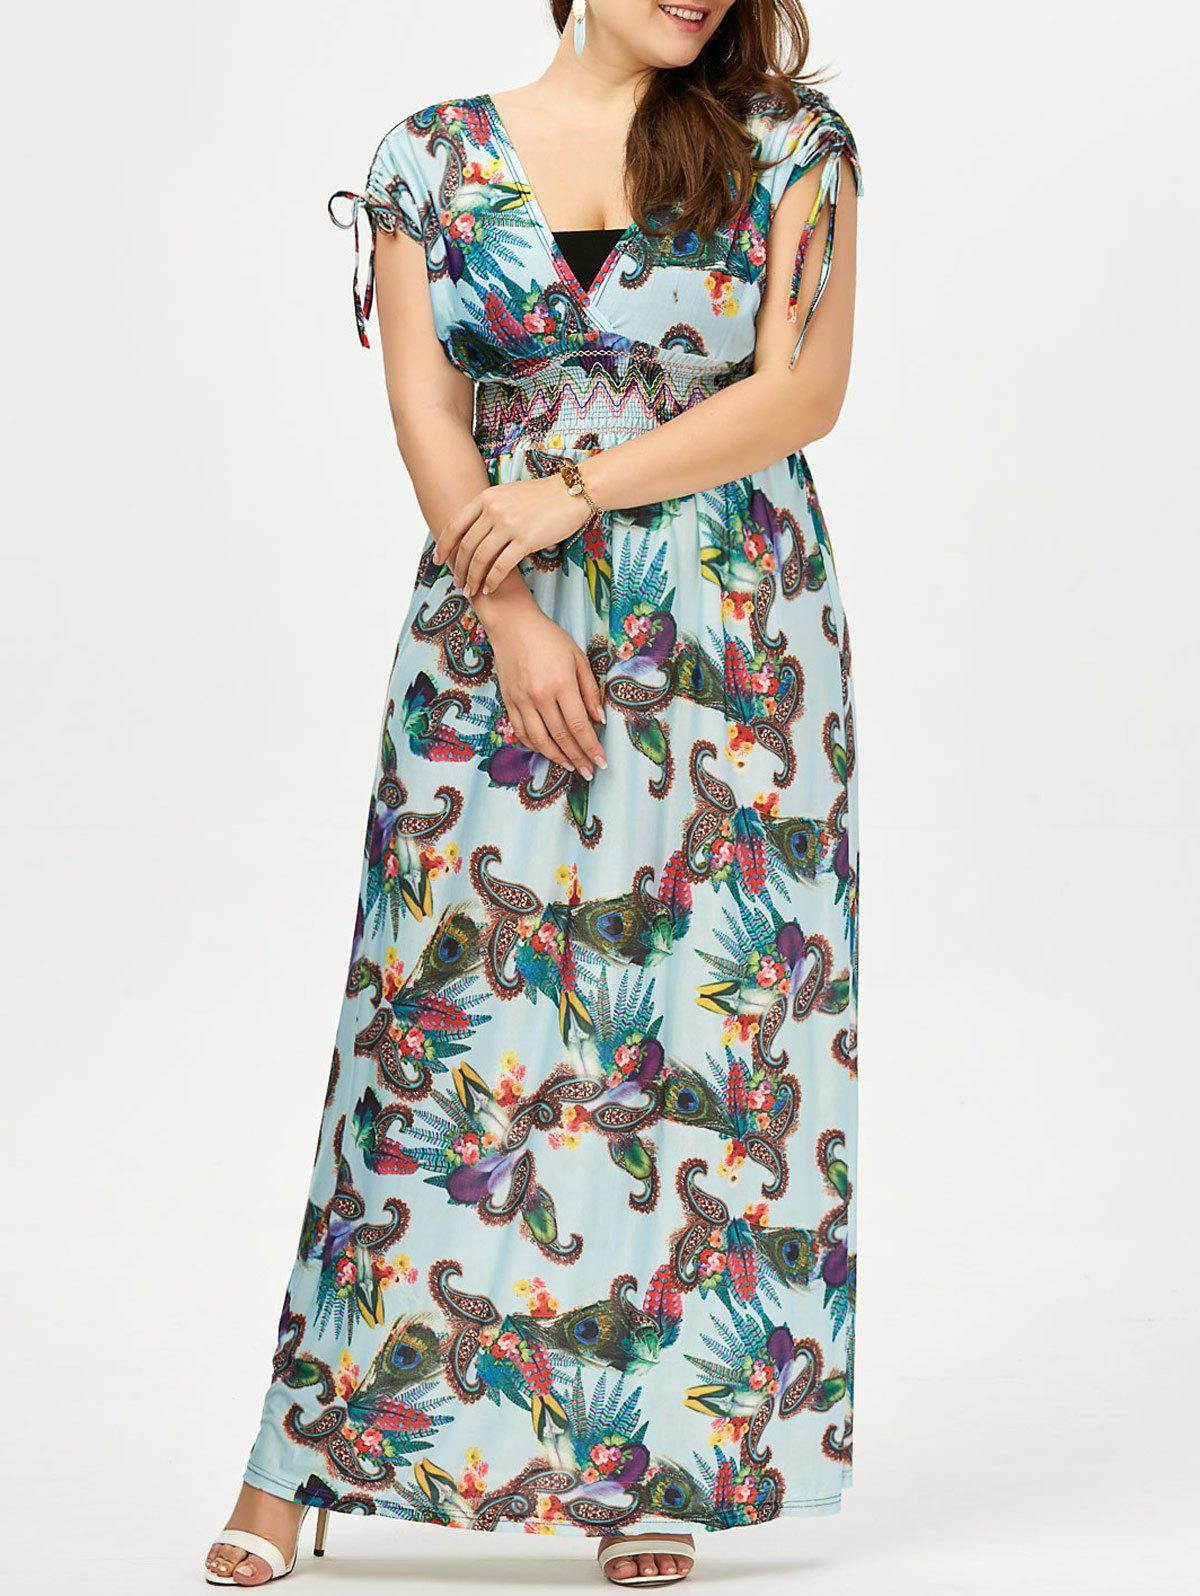 Plus Size Bohemian Printed Maxi Dress Surplice - Pers 6XL